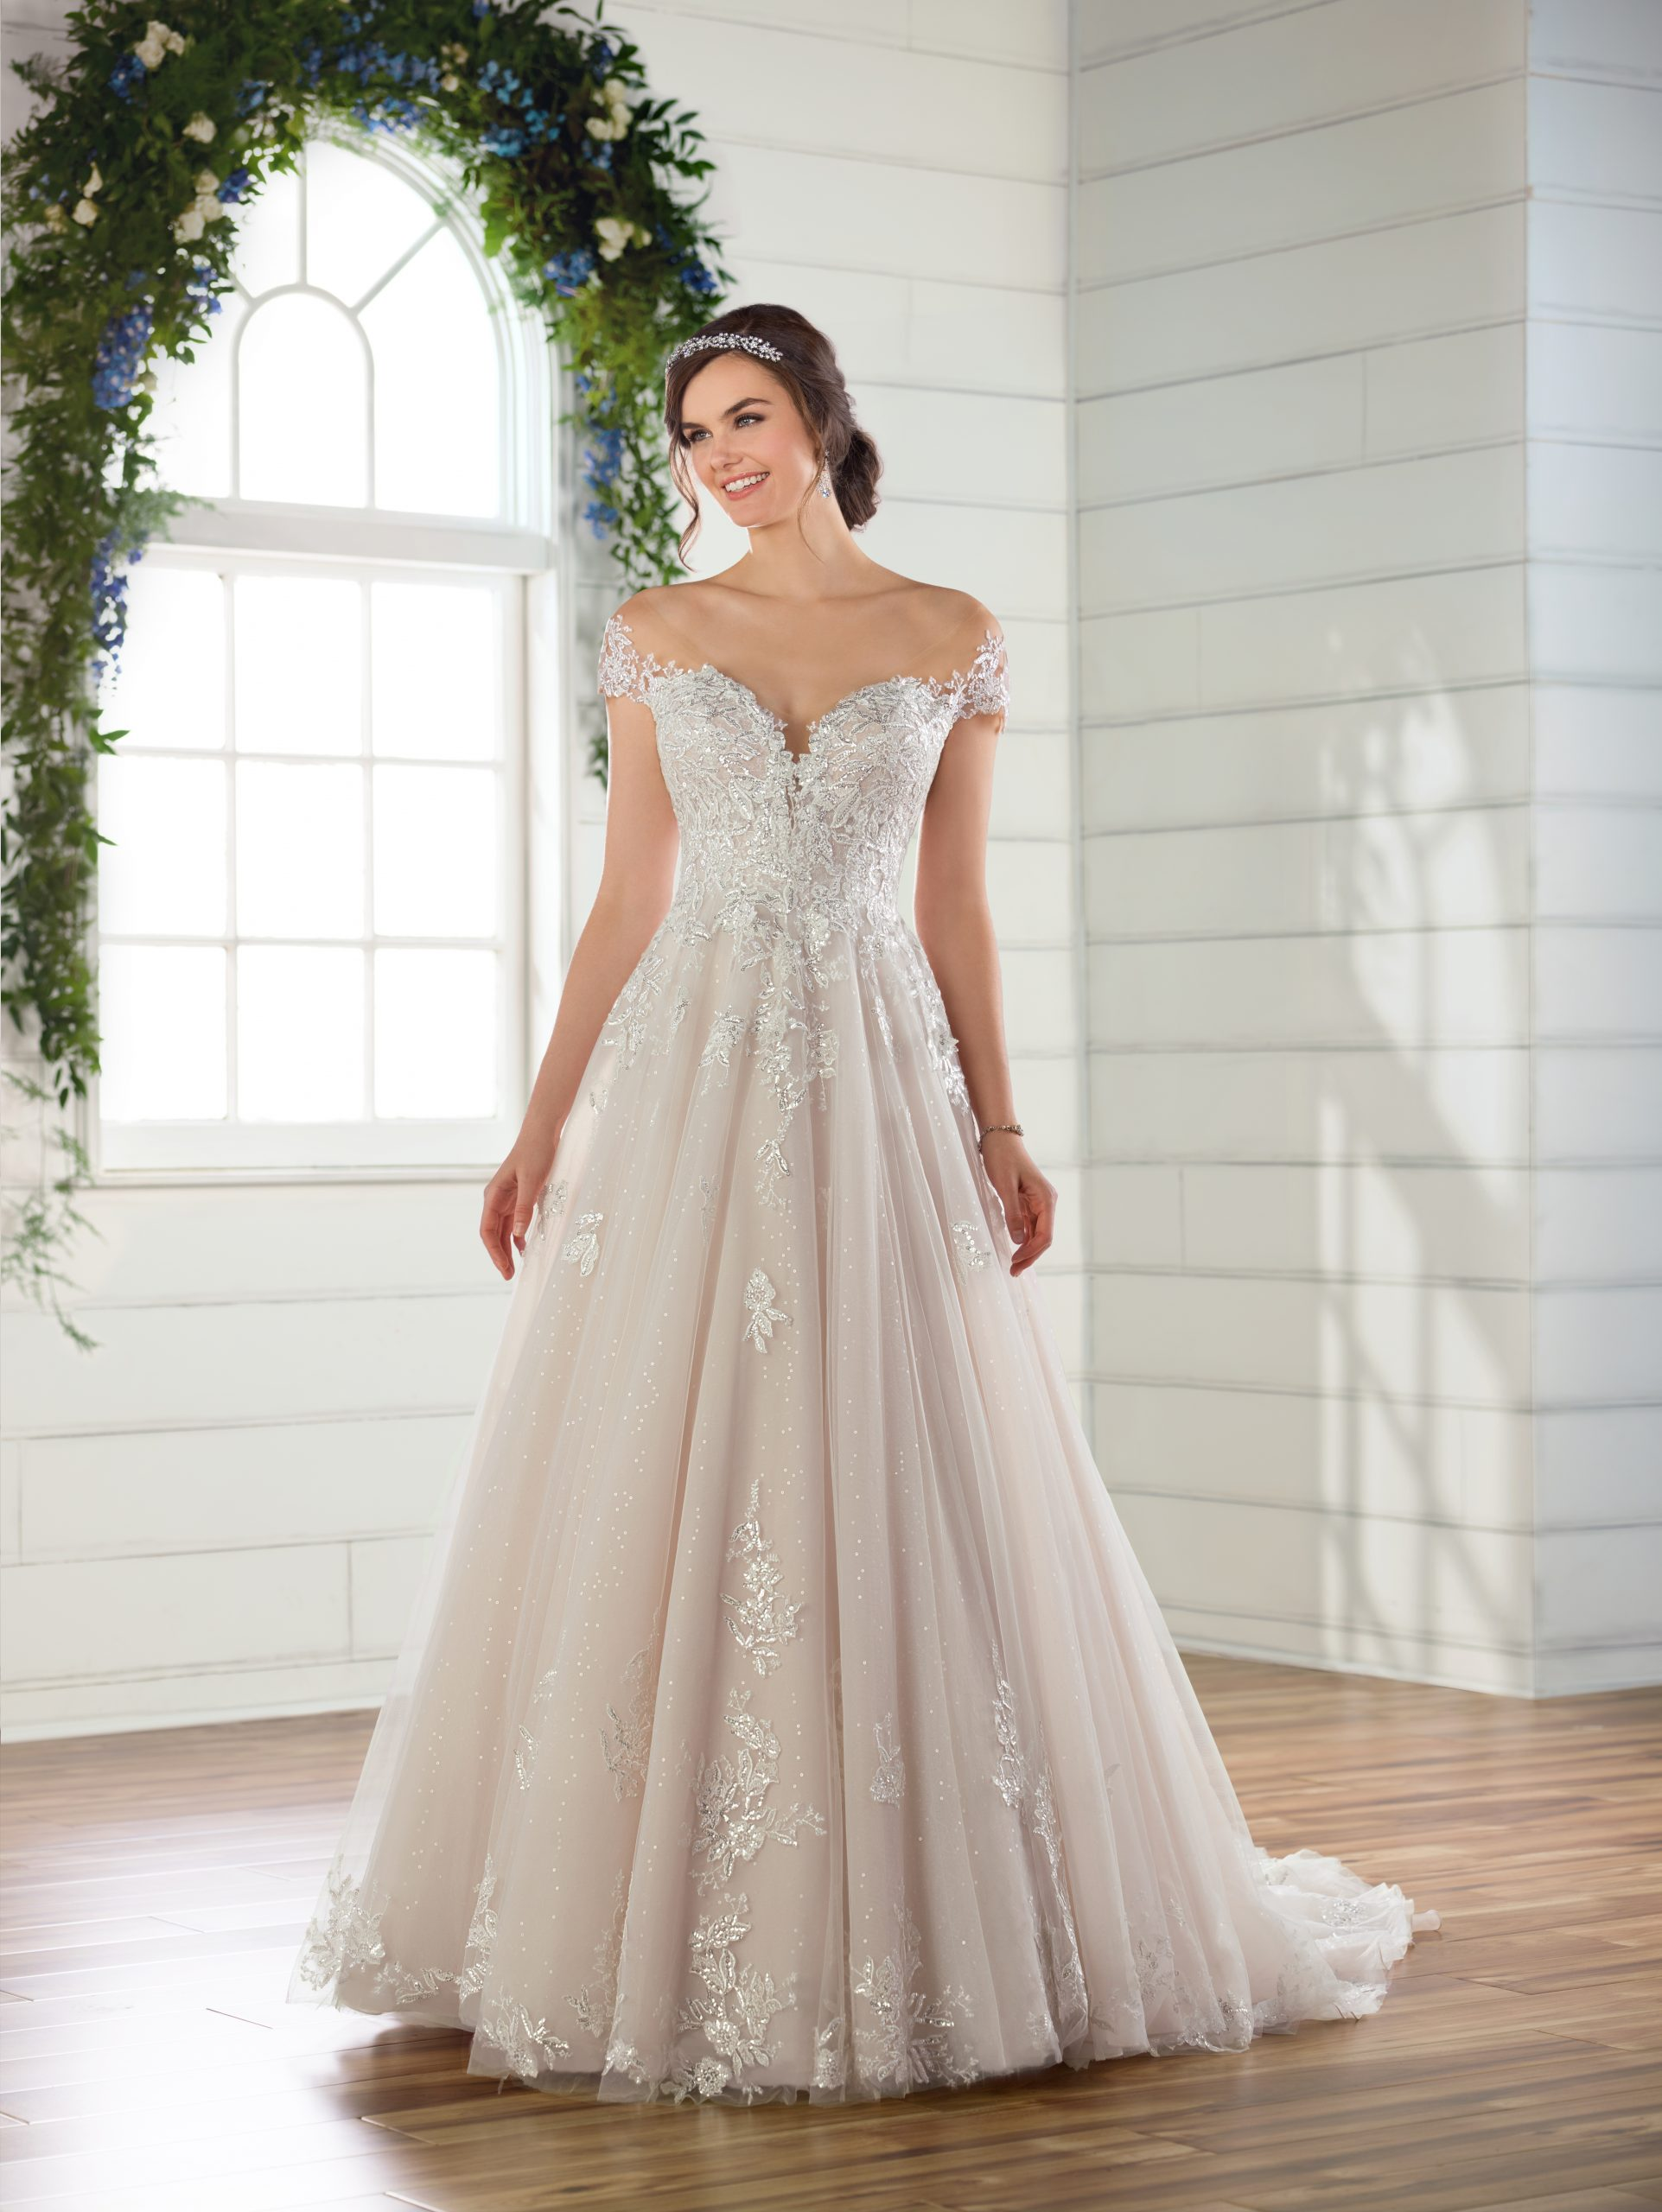 Off The Shoulder Cap Sleeve Ballgown Wedding Dress With 3d Floral Appliques And Lace Kleinfeld Bridal